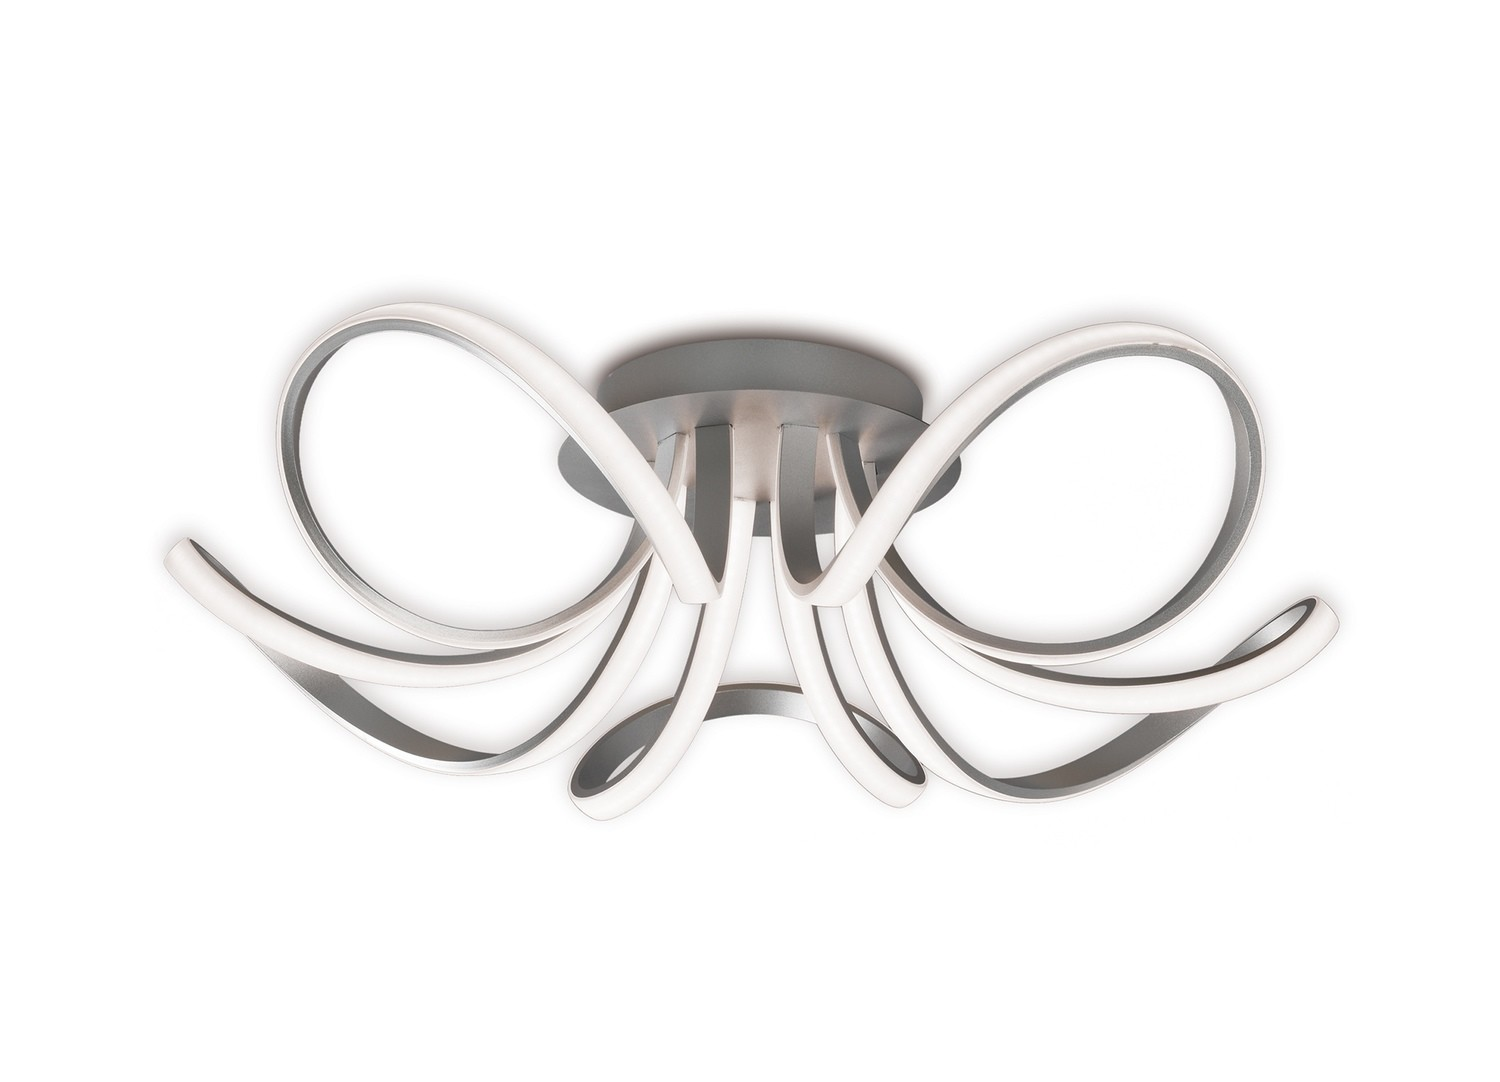 Mantra M5916 Knot Ceiling 74cm Round 5 Looped Arms 60W LED 3000K, 4800lm, Dimmable Silver/Frosted Acrylic/Polished Chrome, 3yrs Warranty